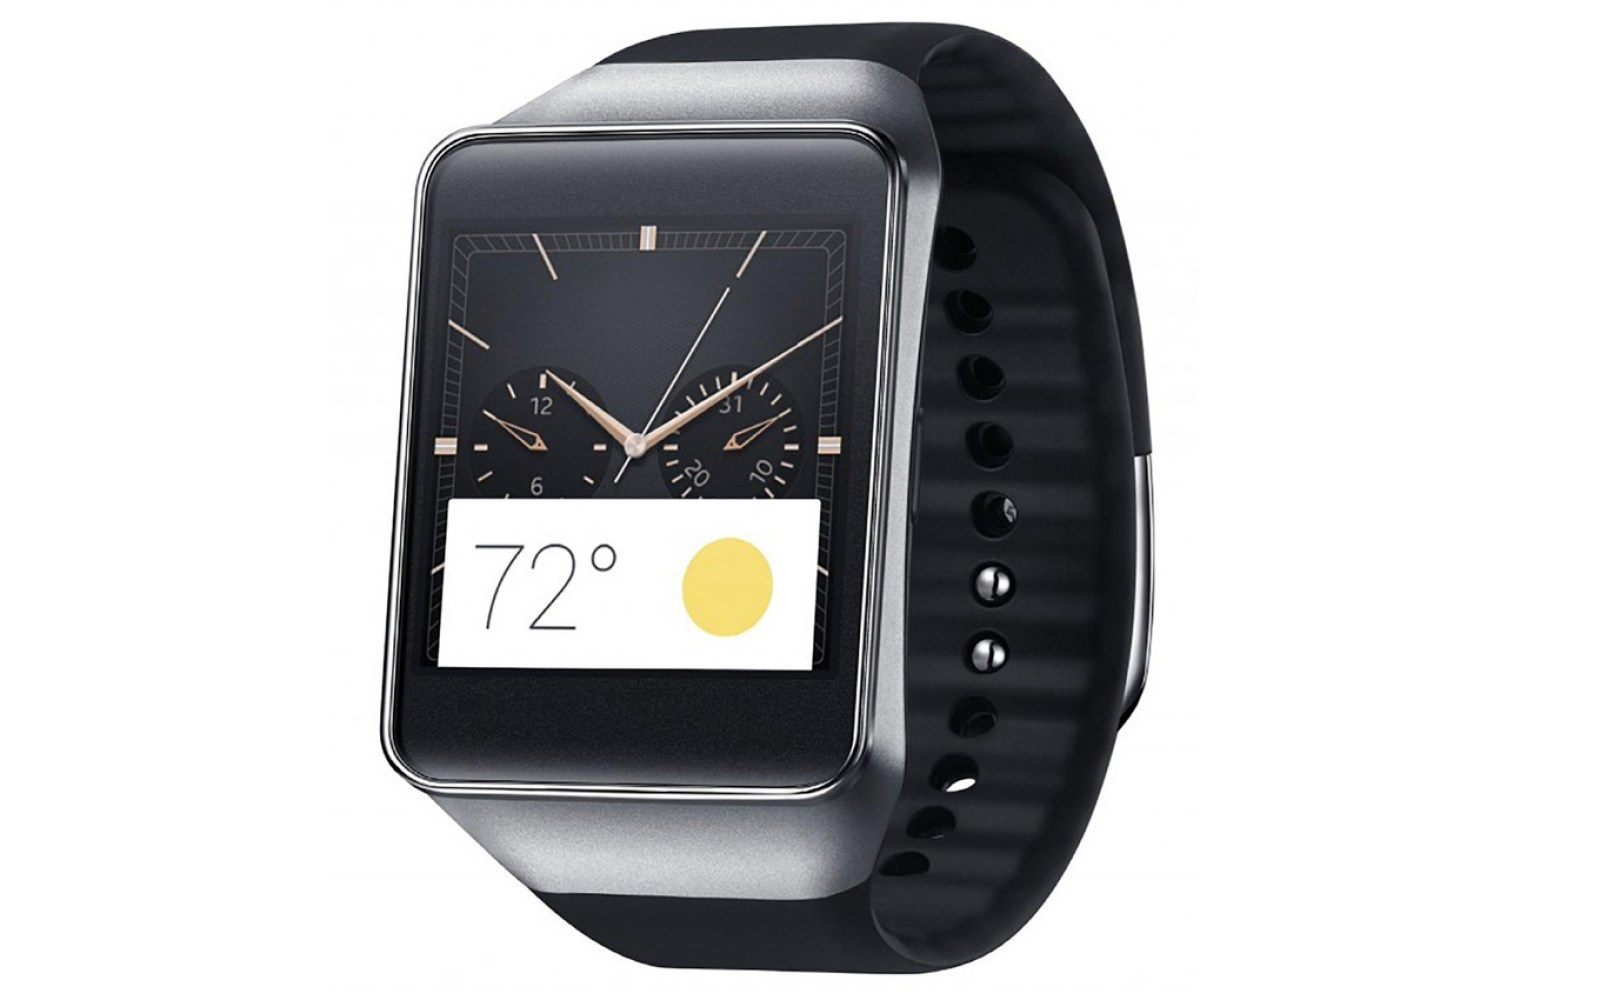 Daily Deals: Samsung Galaxy Gear Live Android Smartwatch $80, Canon PIXMA Inkjet Printer w/ AirPrint $35, more